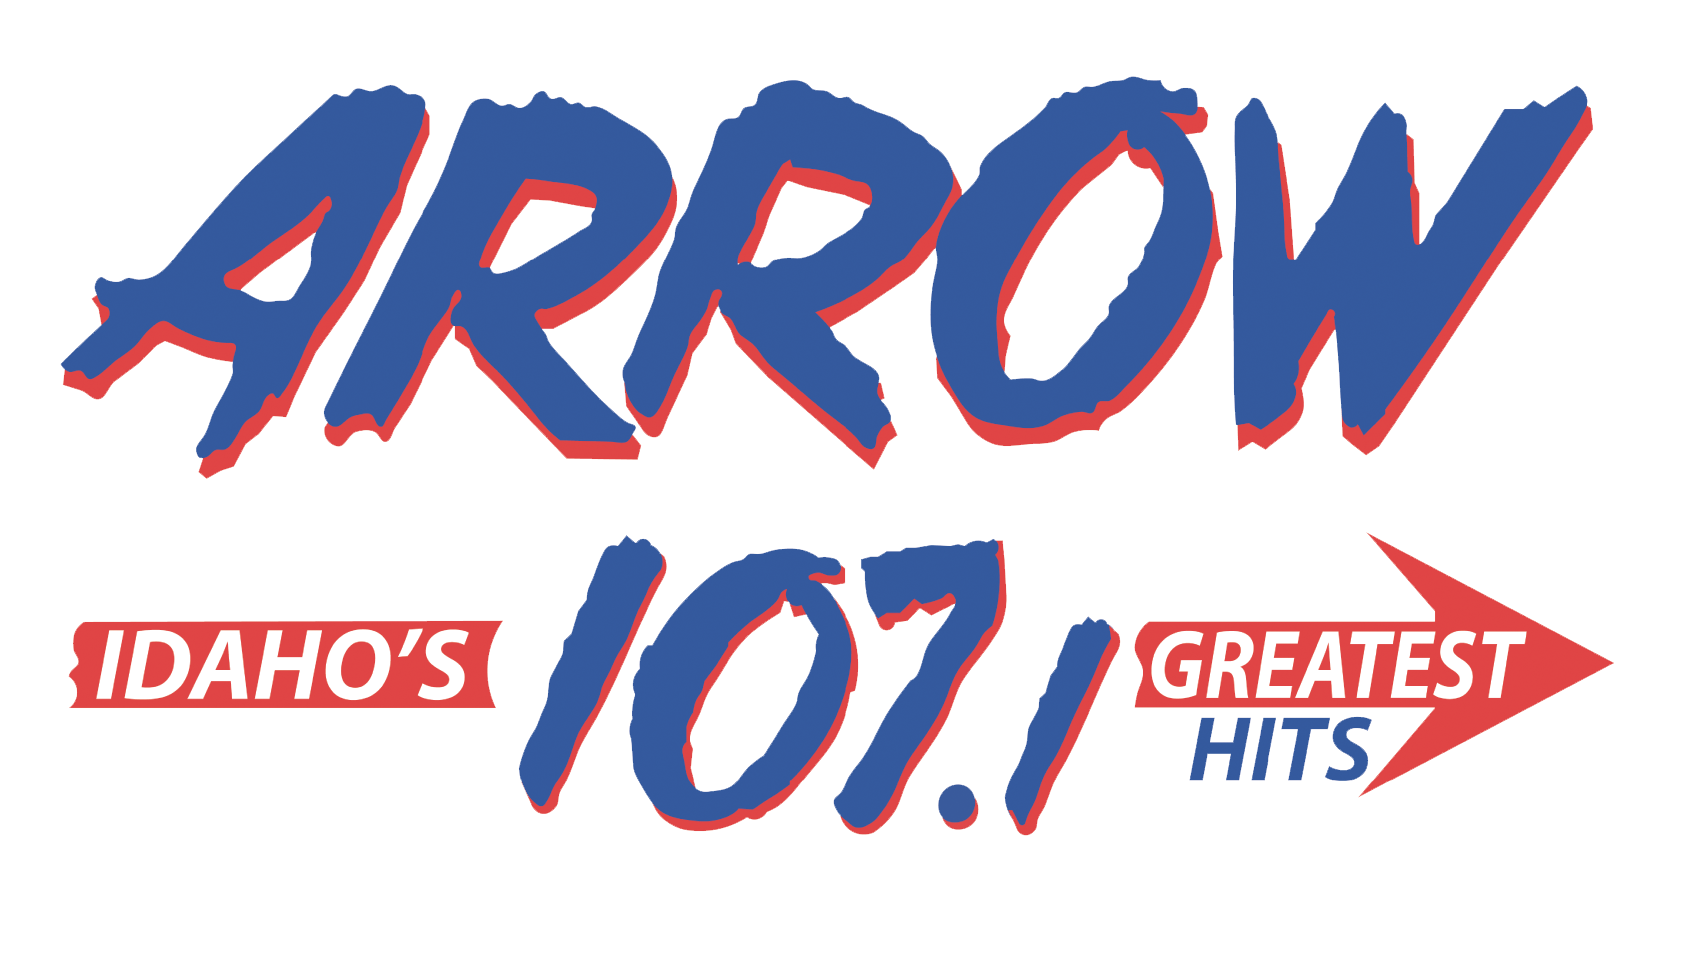 KQEO Arrow 107 Idaho's Greatest Hits